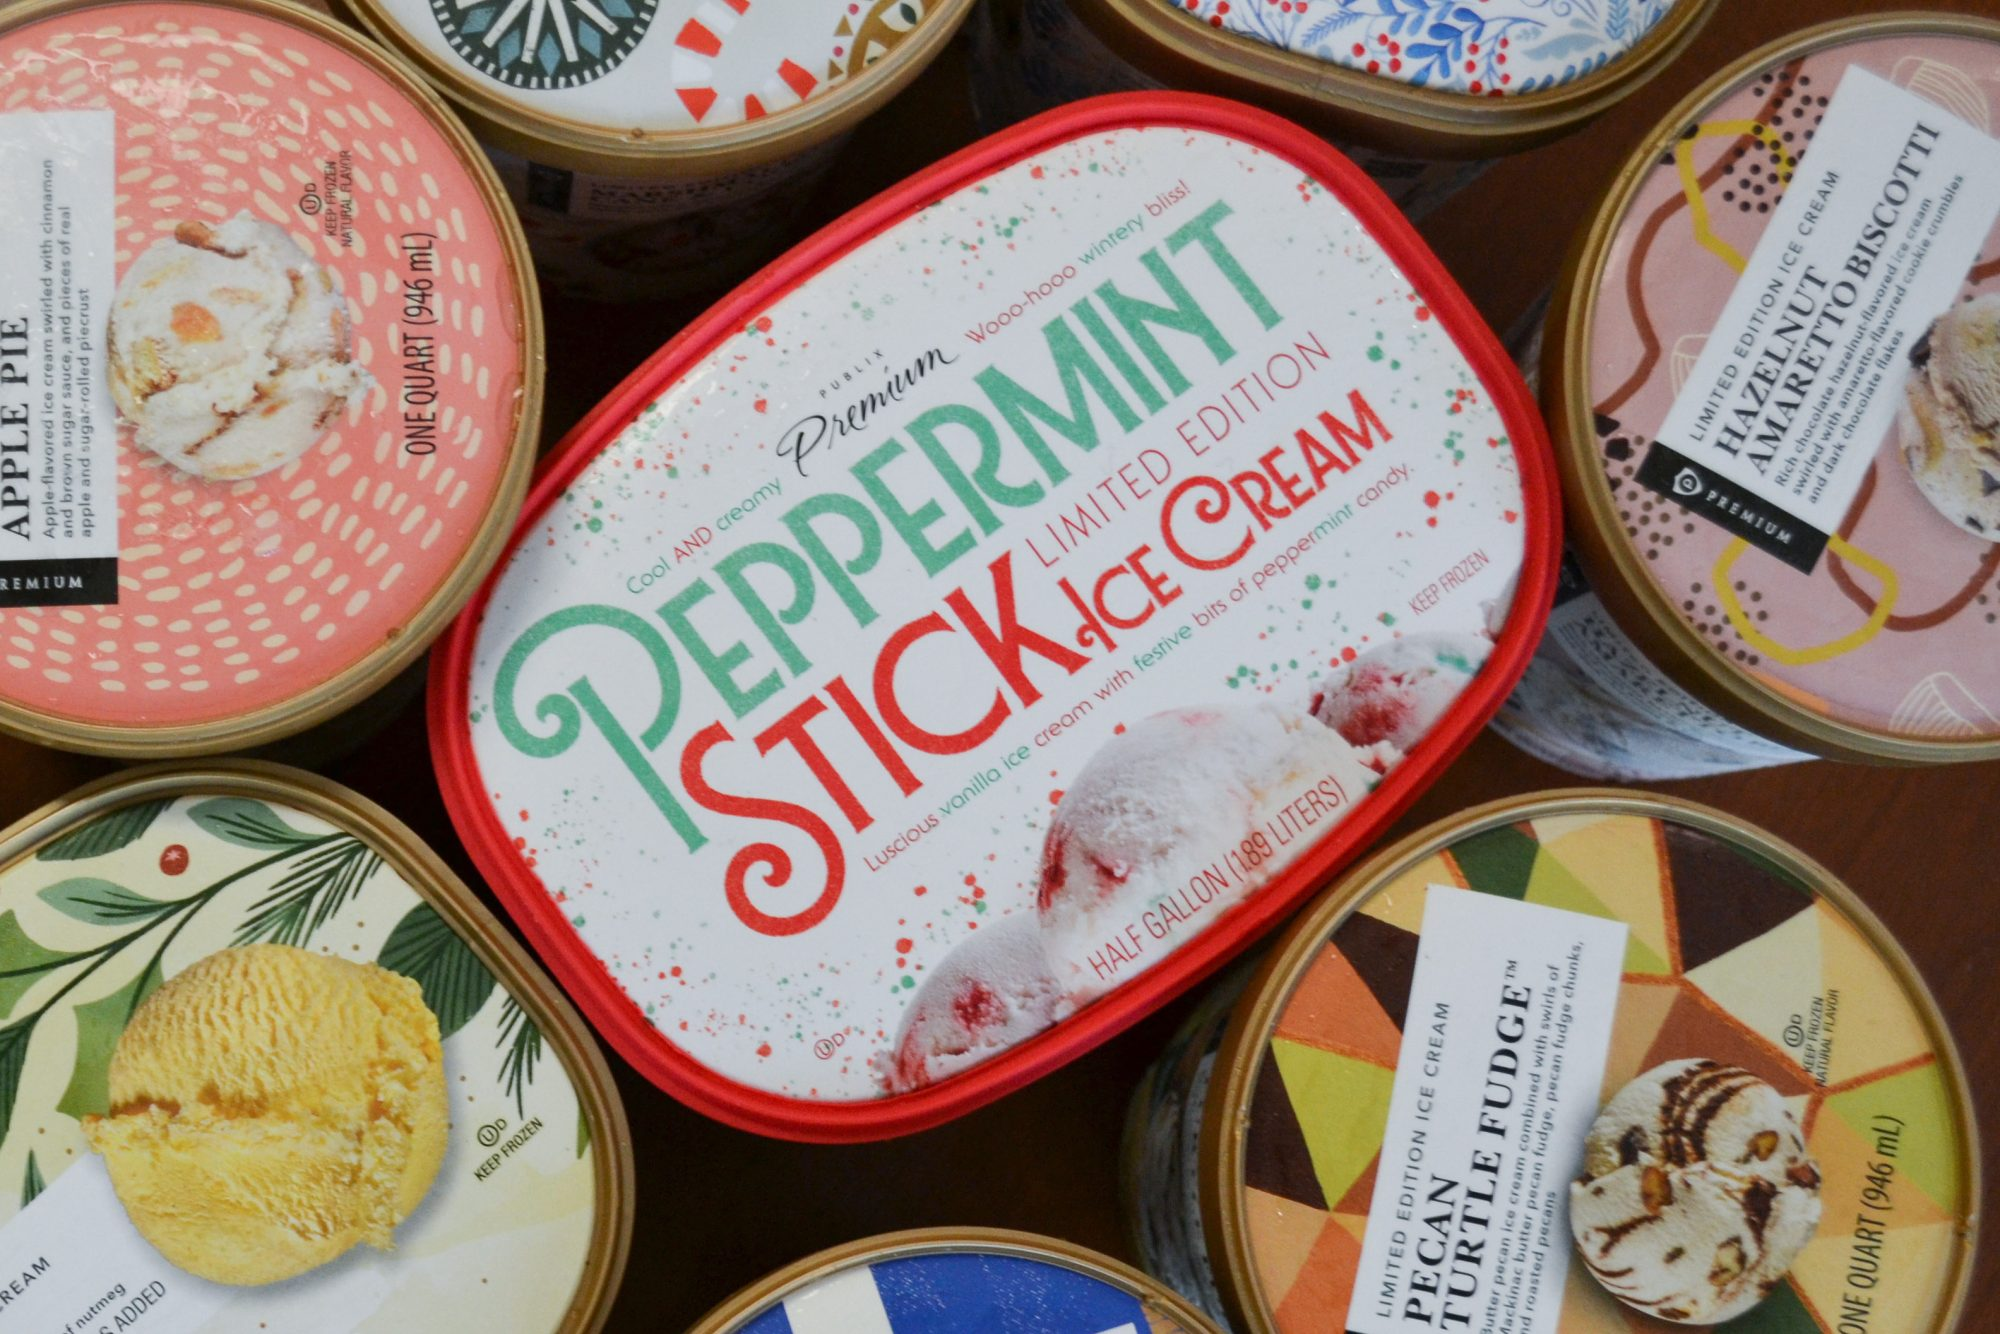 Publix's Limited-Edition Peppermint Stick Ice Cream is The Ultimate Nostalgic Treat